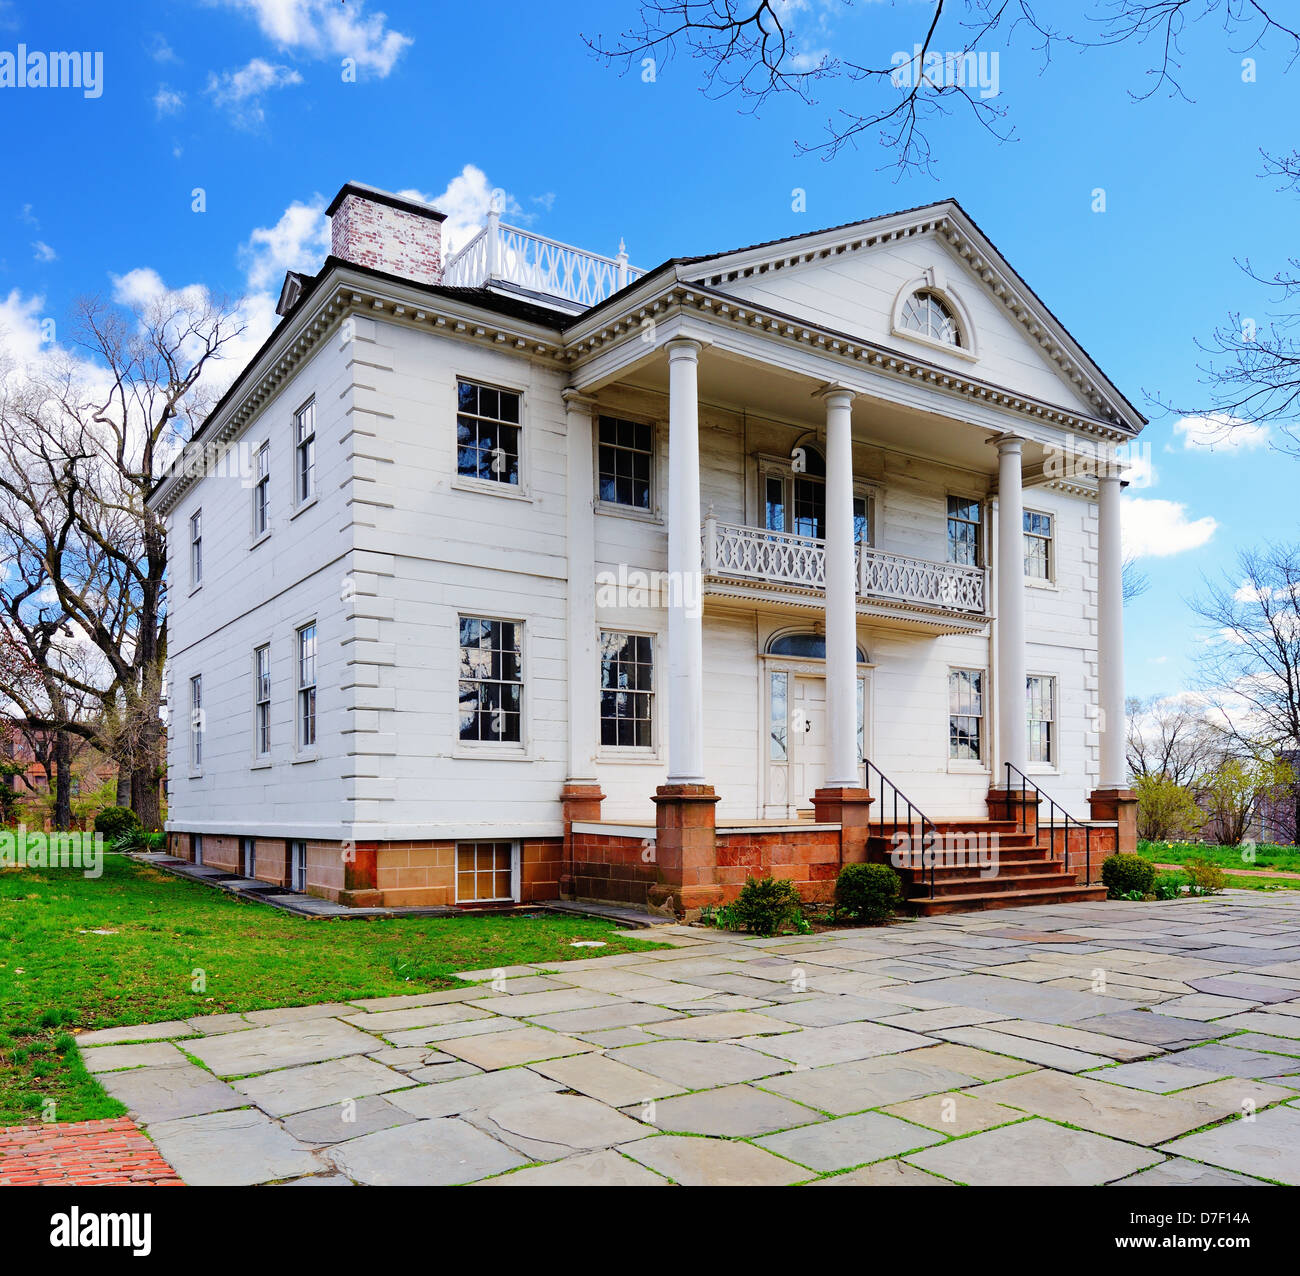 The historic Morris-Jumel Mansion in Washington Heights, New York, New York, USA. - Stock Image